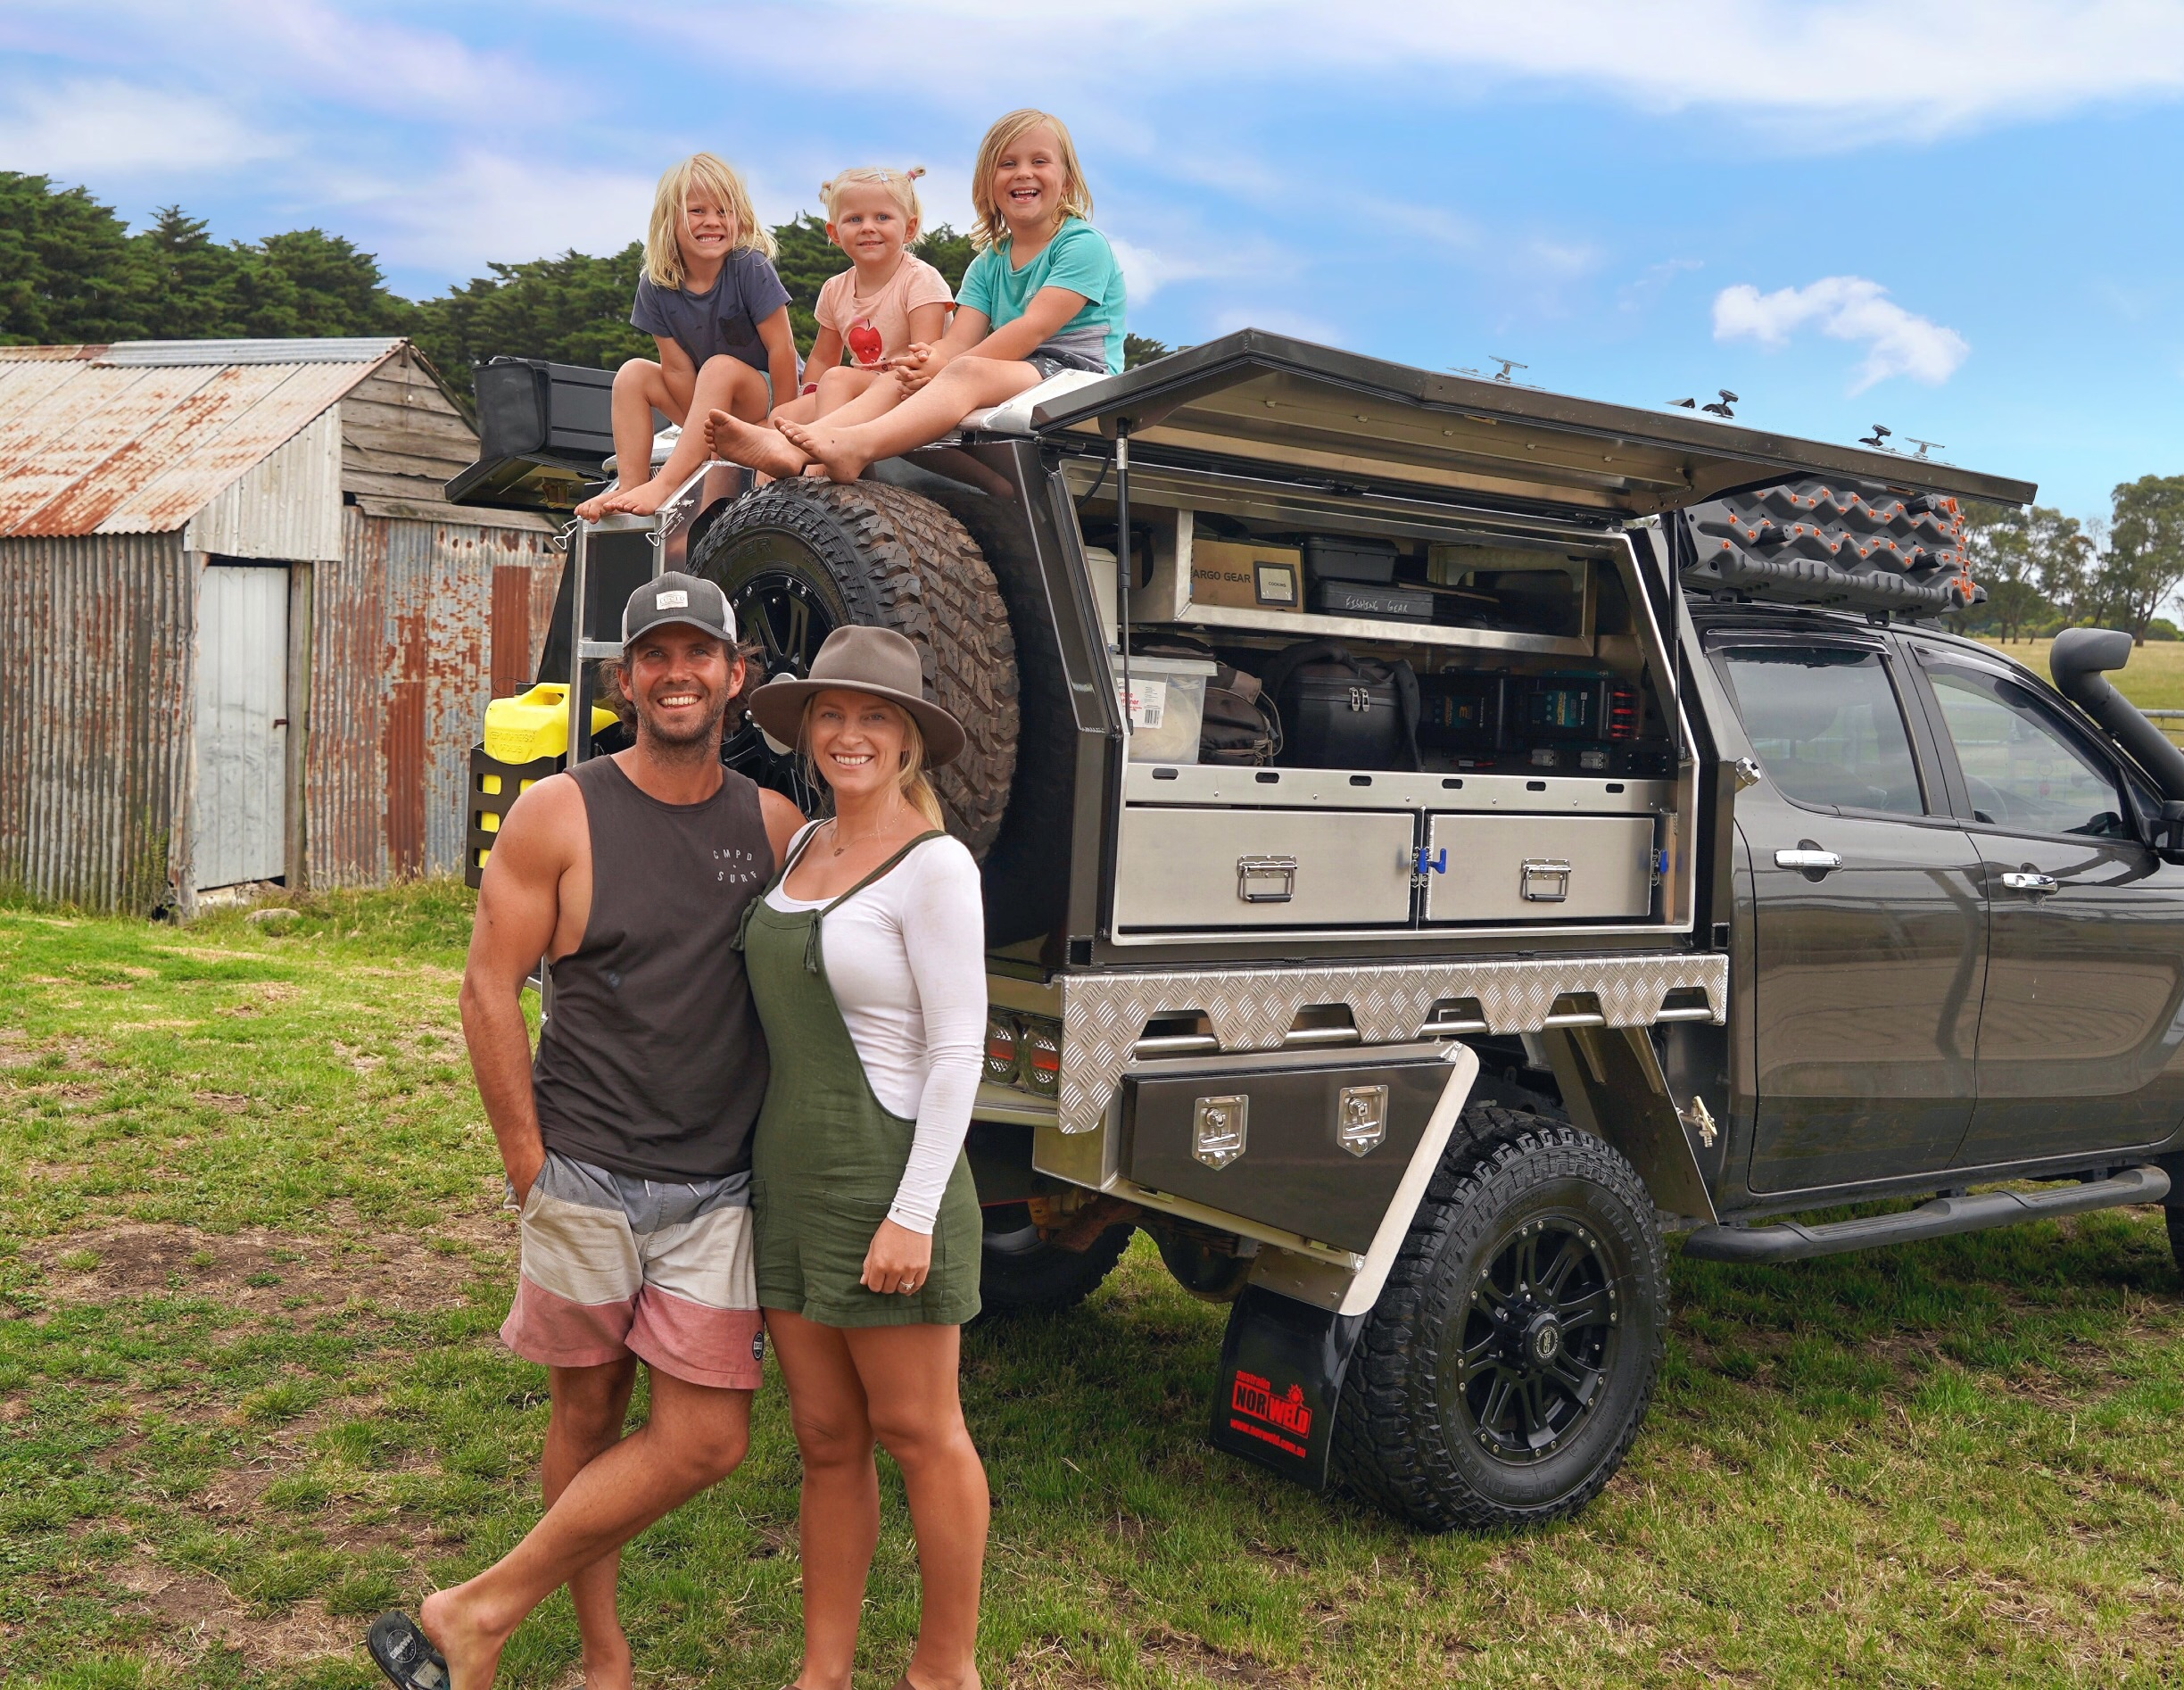 The New addition for 2019 is an Alloy Canopy from Norweld Australia. Keep reading below to find out more info in specs and details on the build.